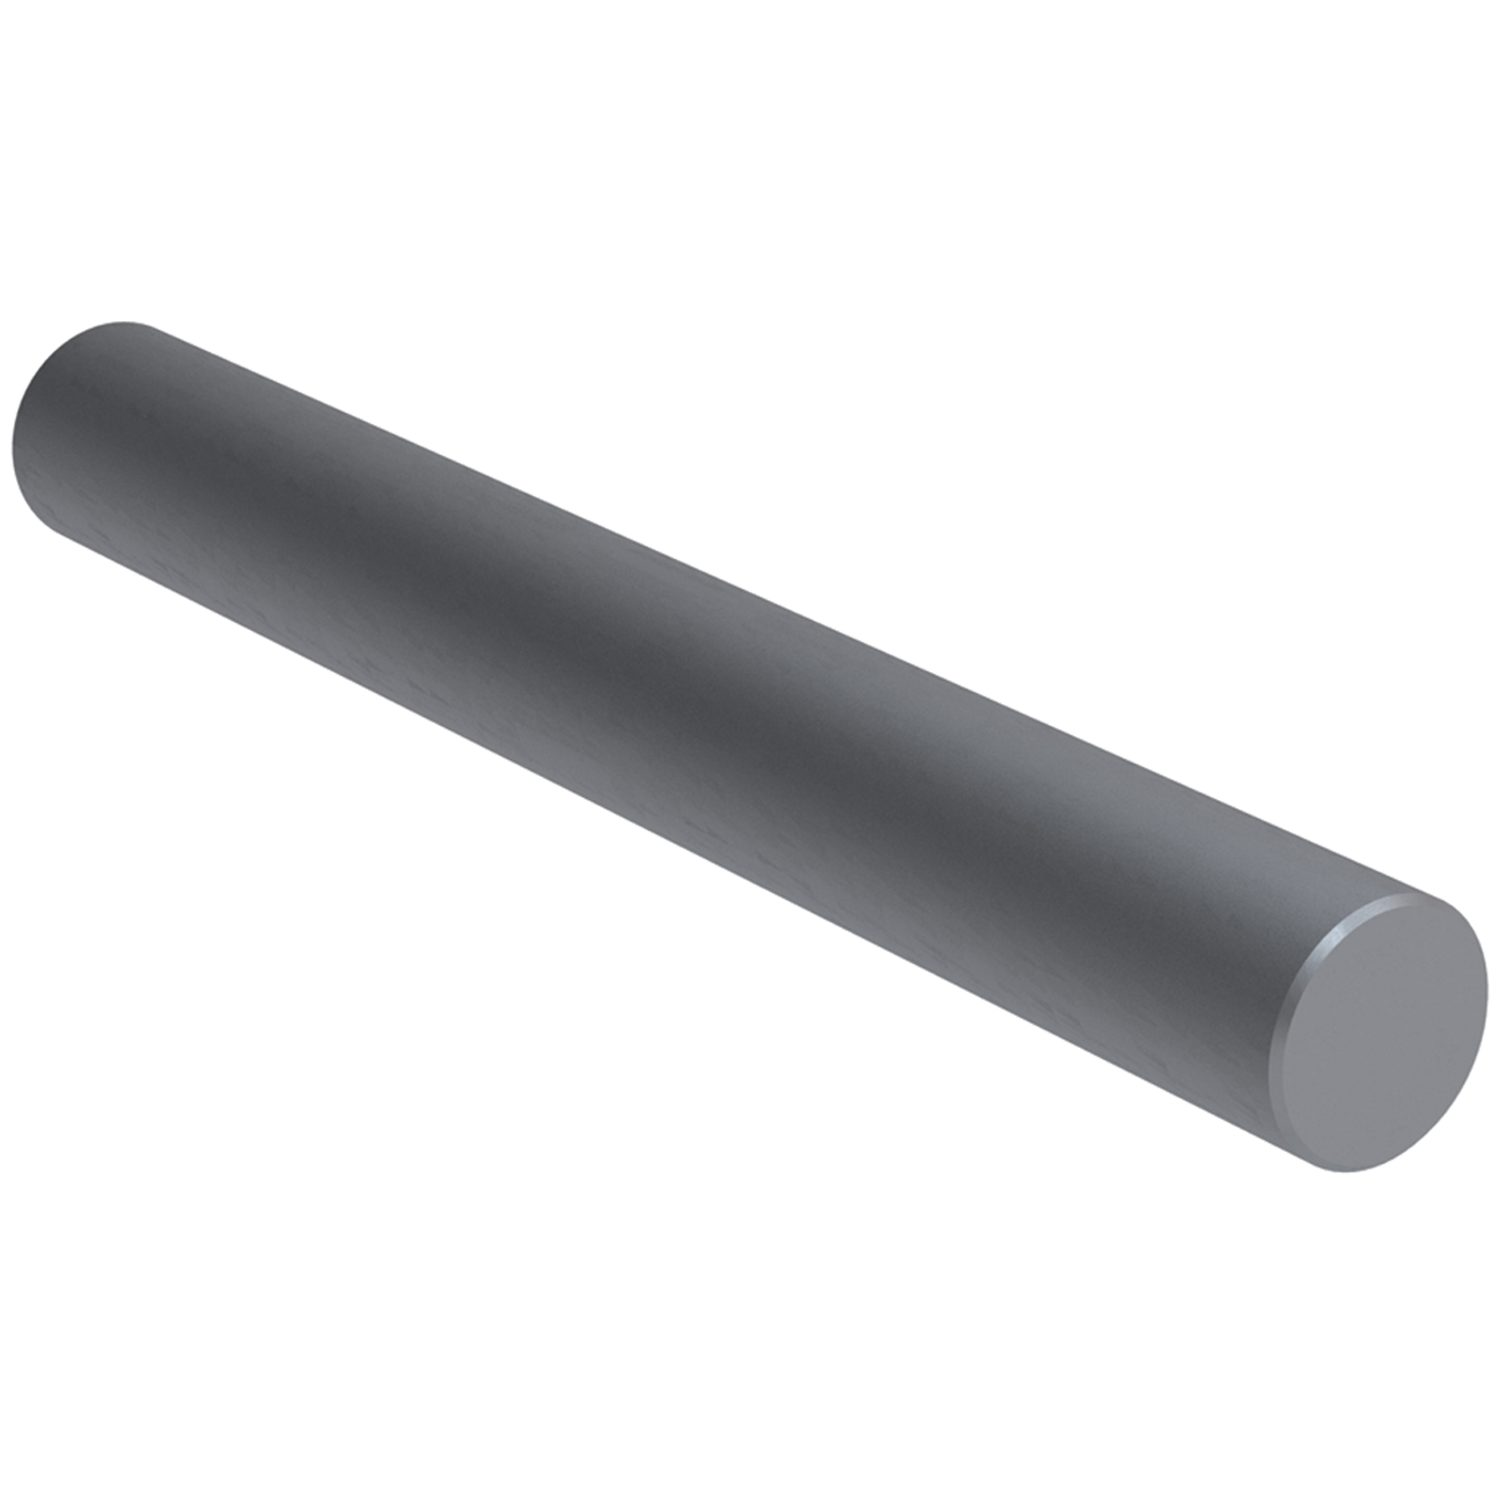 Aluminium Linear Shafting